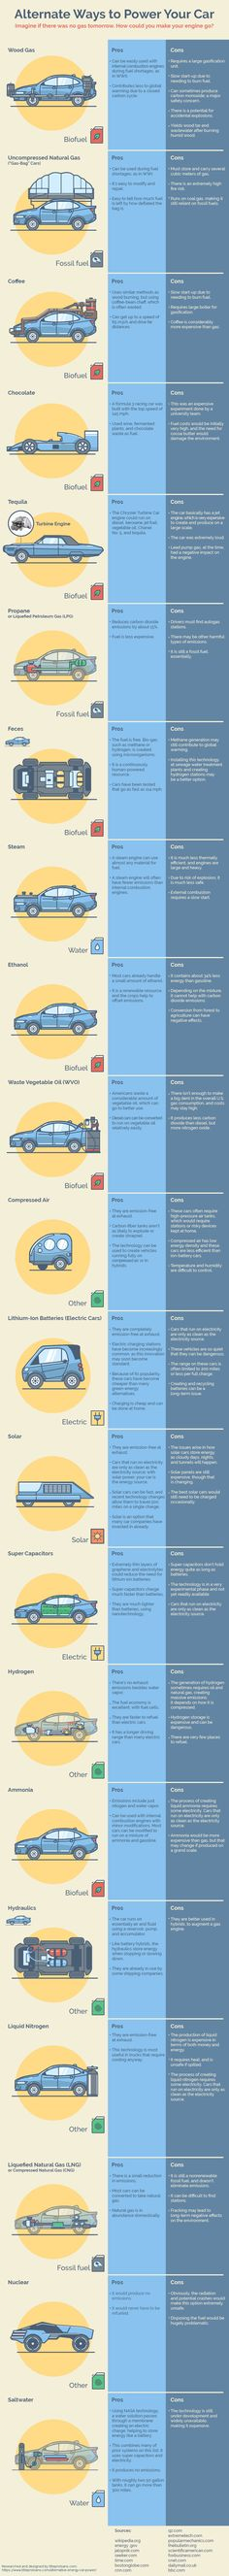 Here are some ways to power your car without fuel.